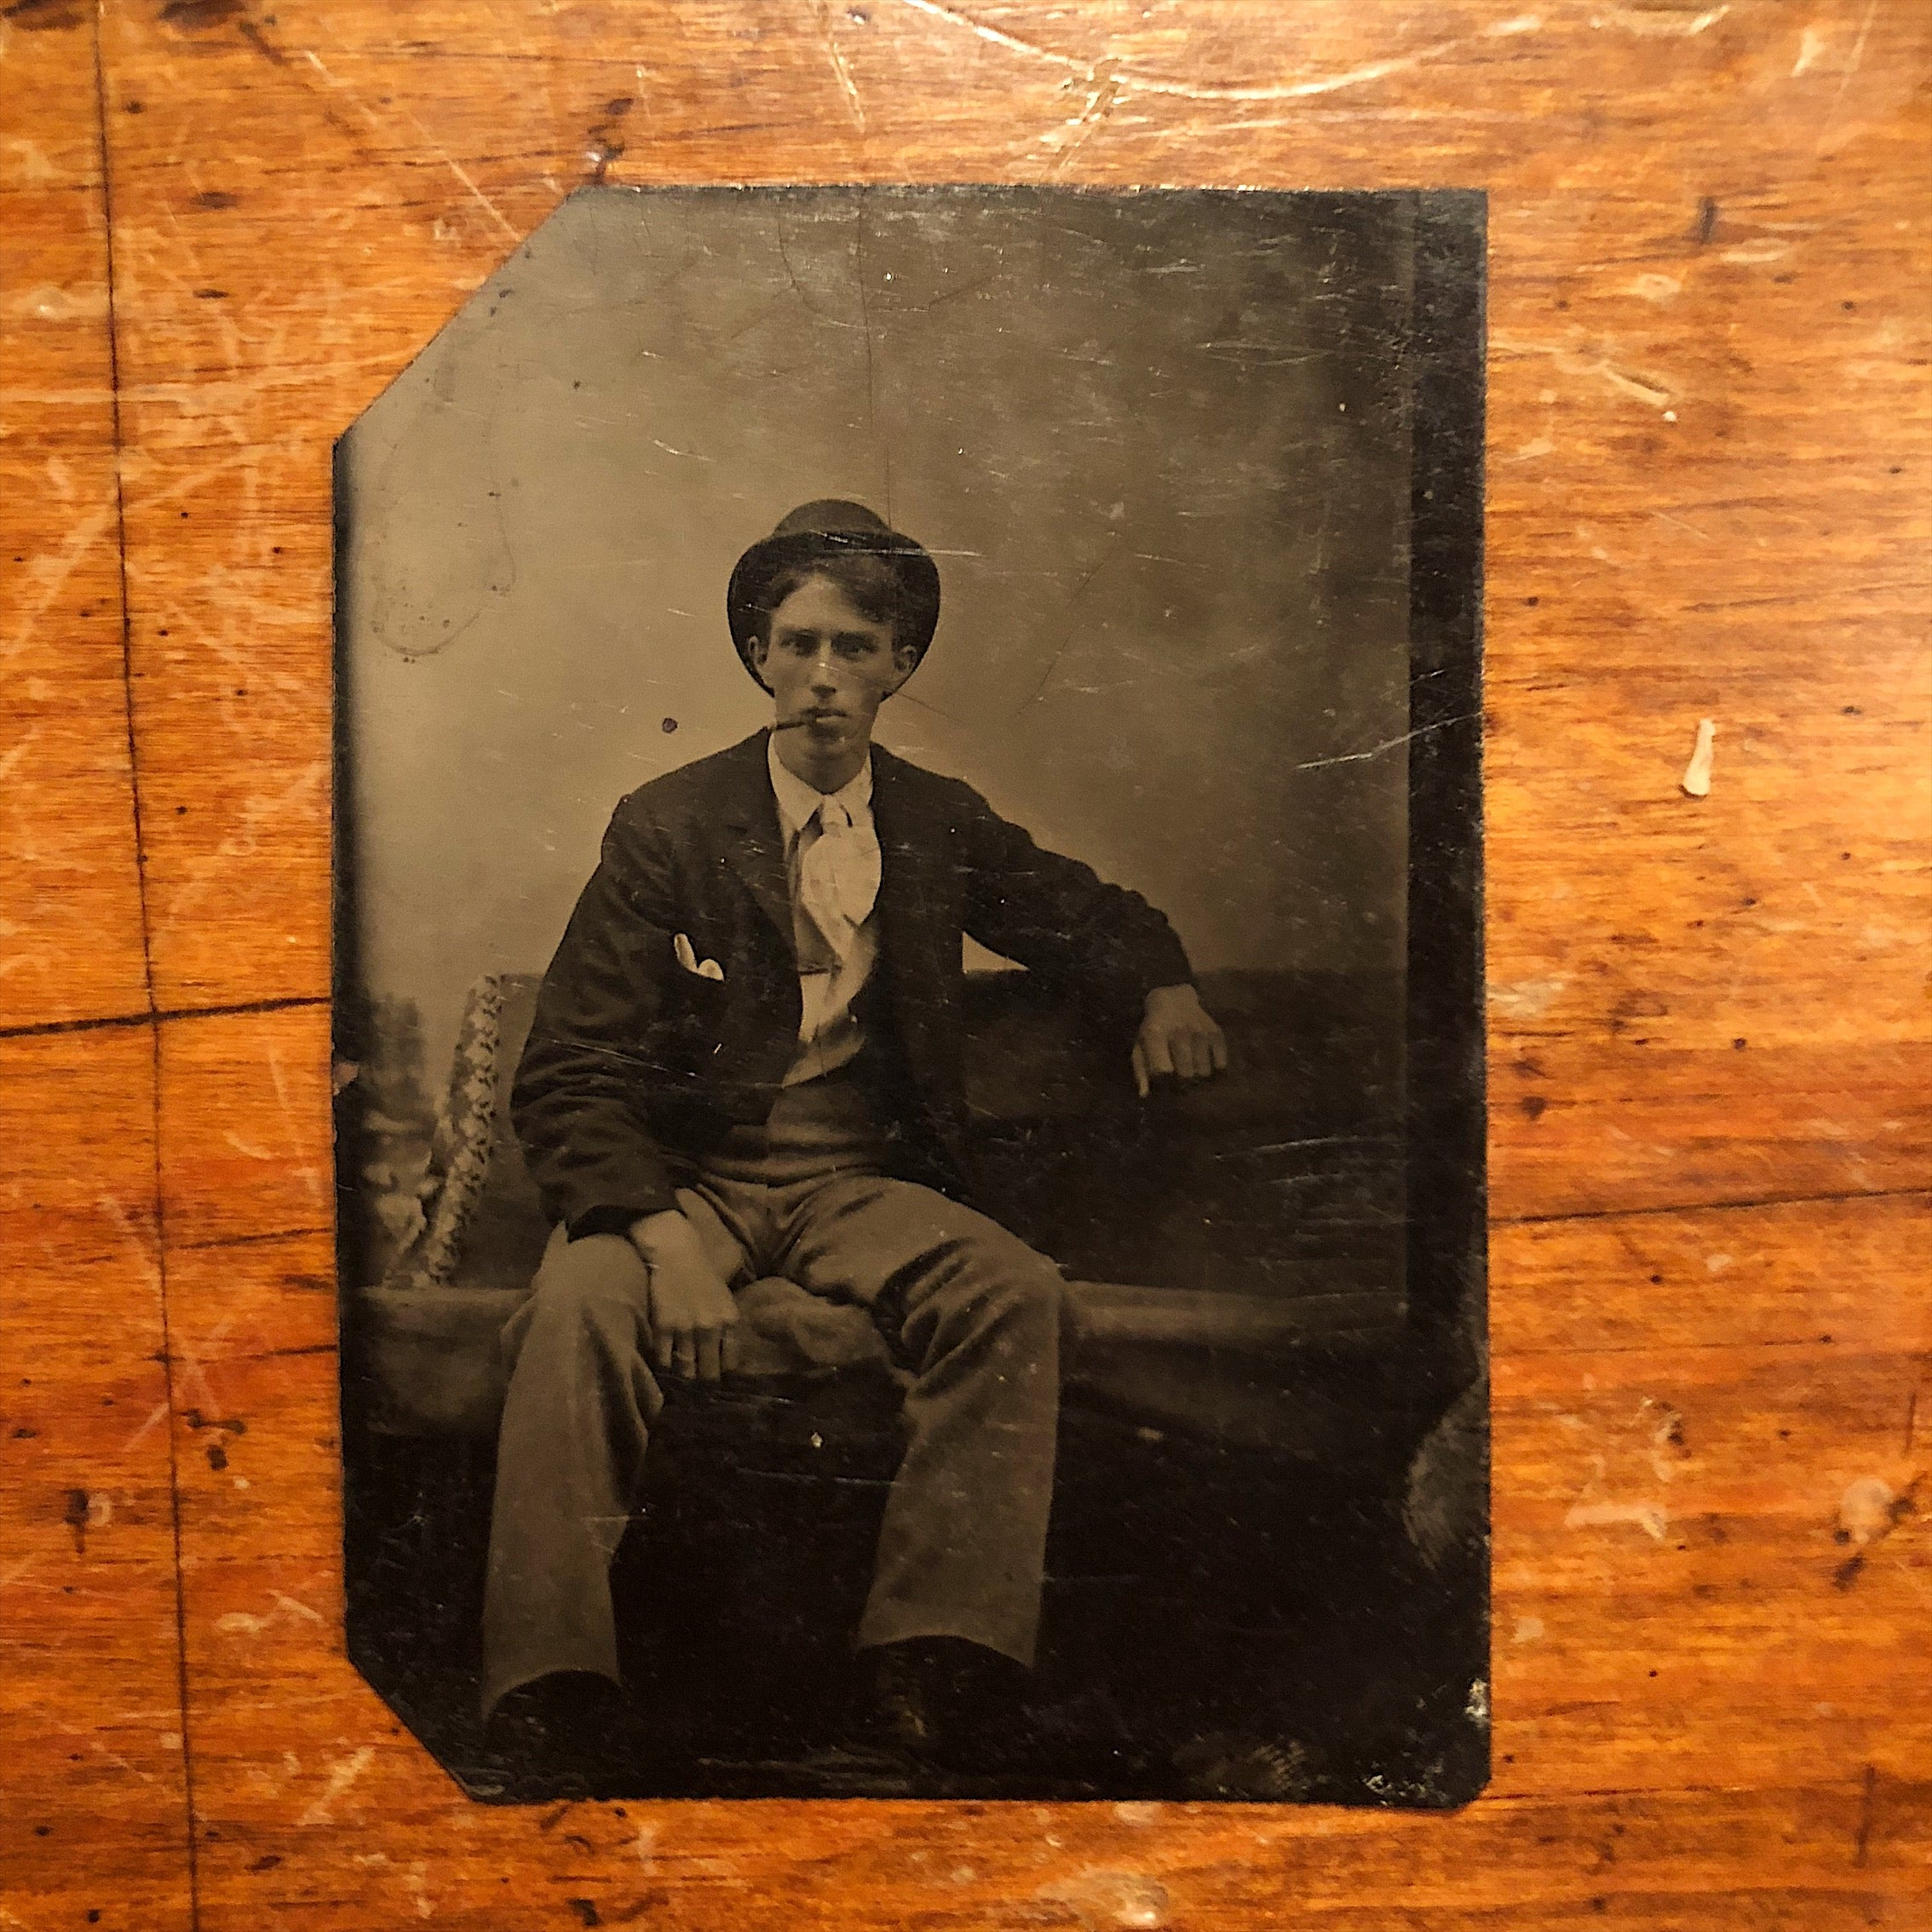 Antique TinType of Dapper Gentleman Smoking a Cigar 1800s